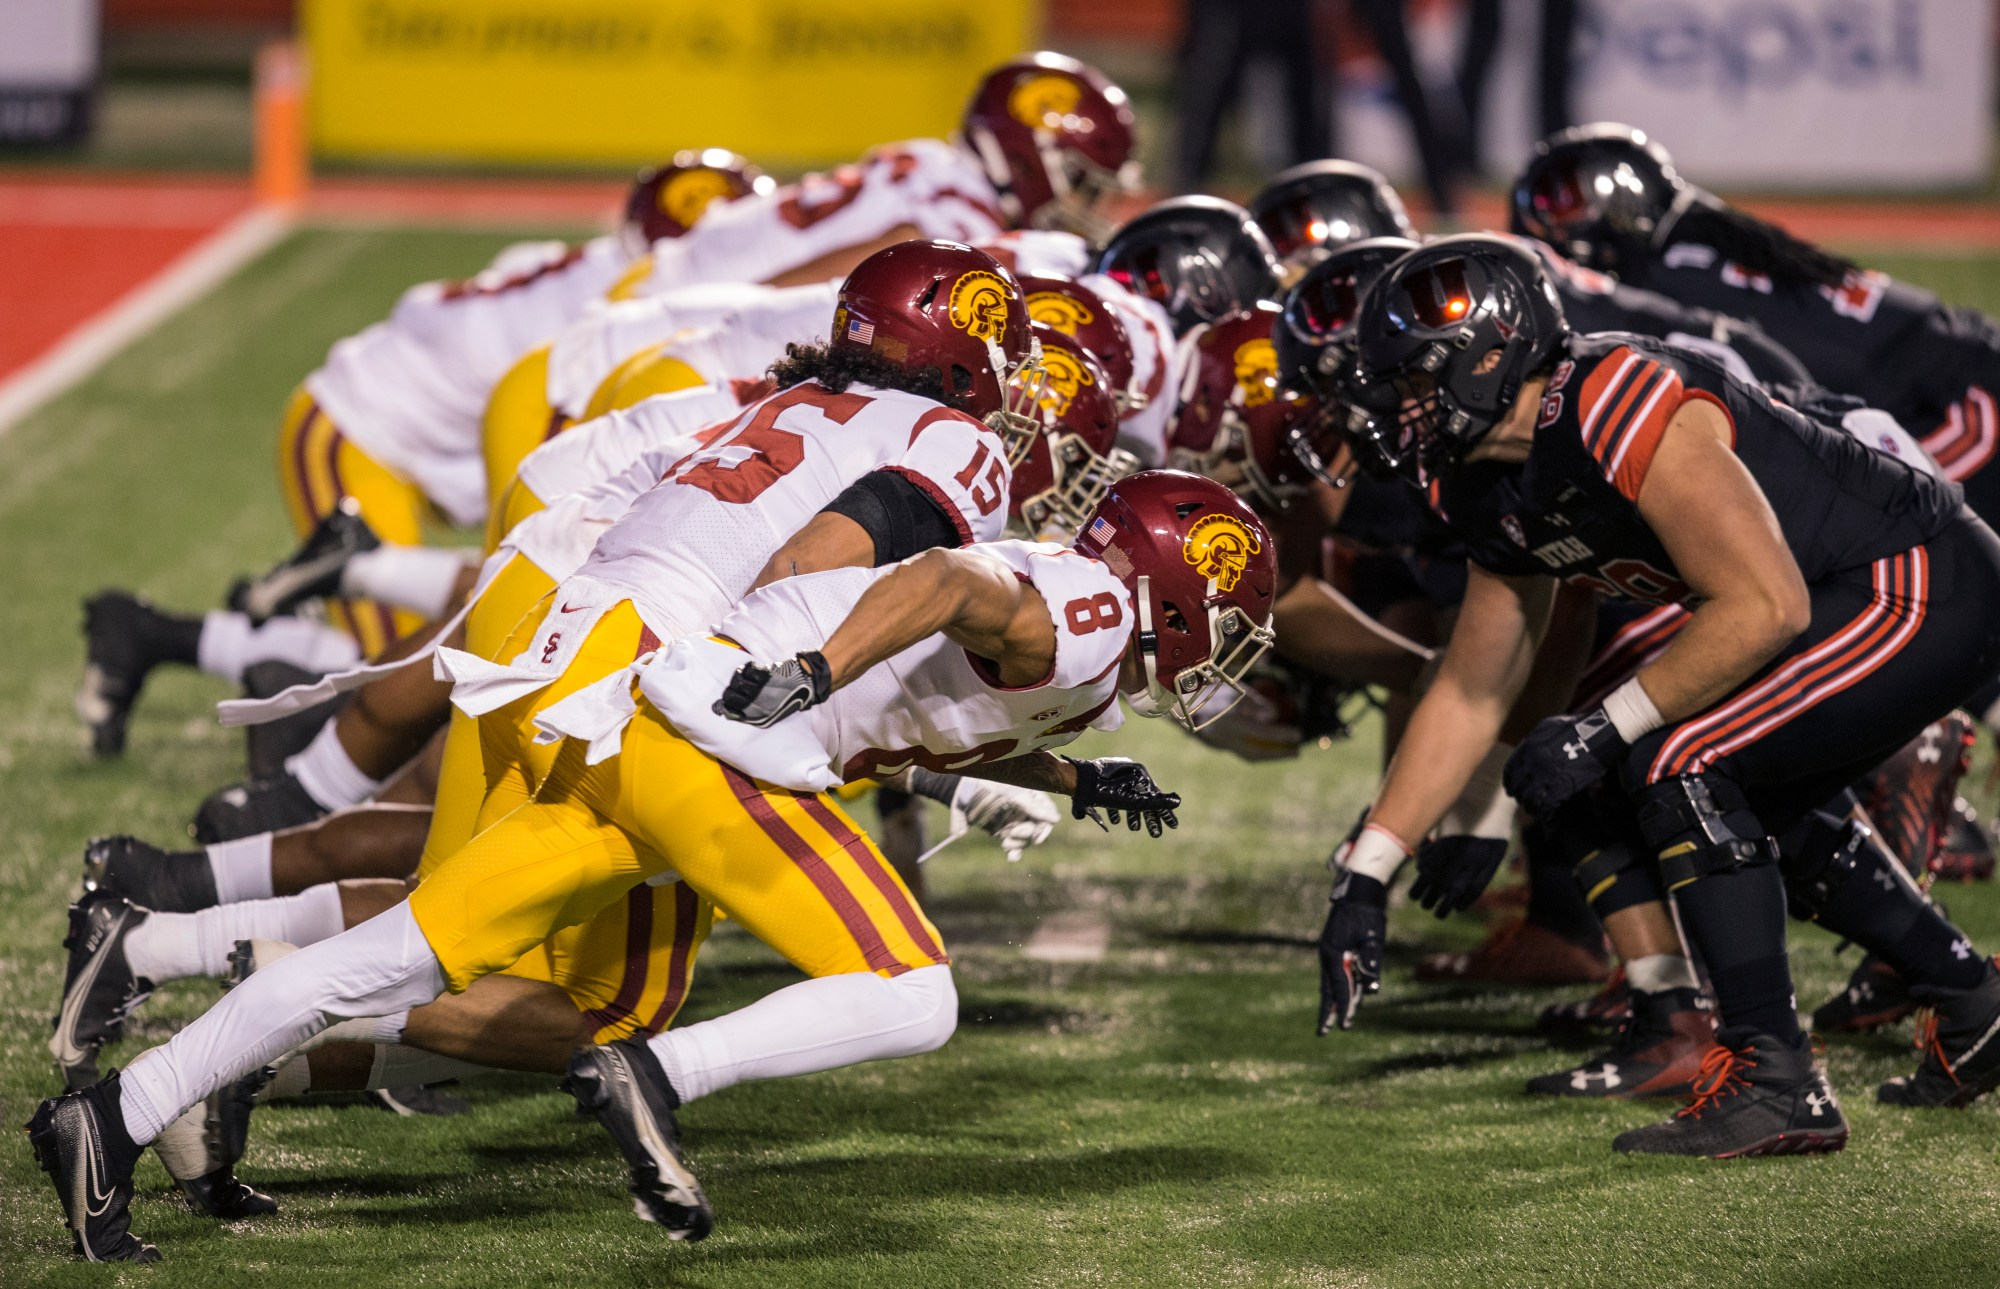 The lines of the Utah Utes and the USC Trojans clash after a snap during their game November 21, 2020 at Rice Eccles Stadium in Logan, Utah. (Chris Gardner/Getty Images)